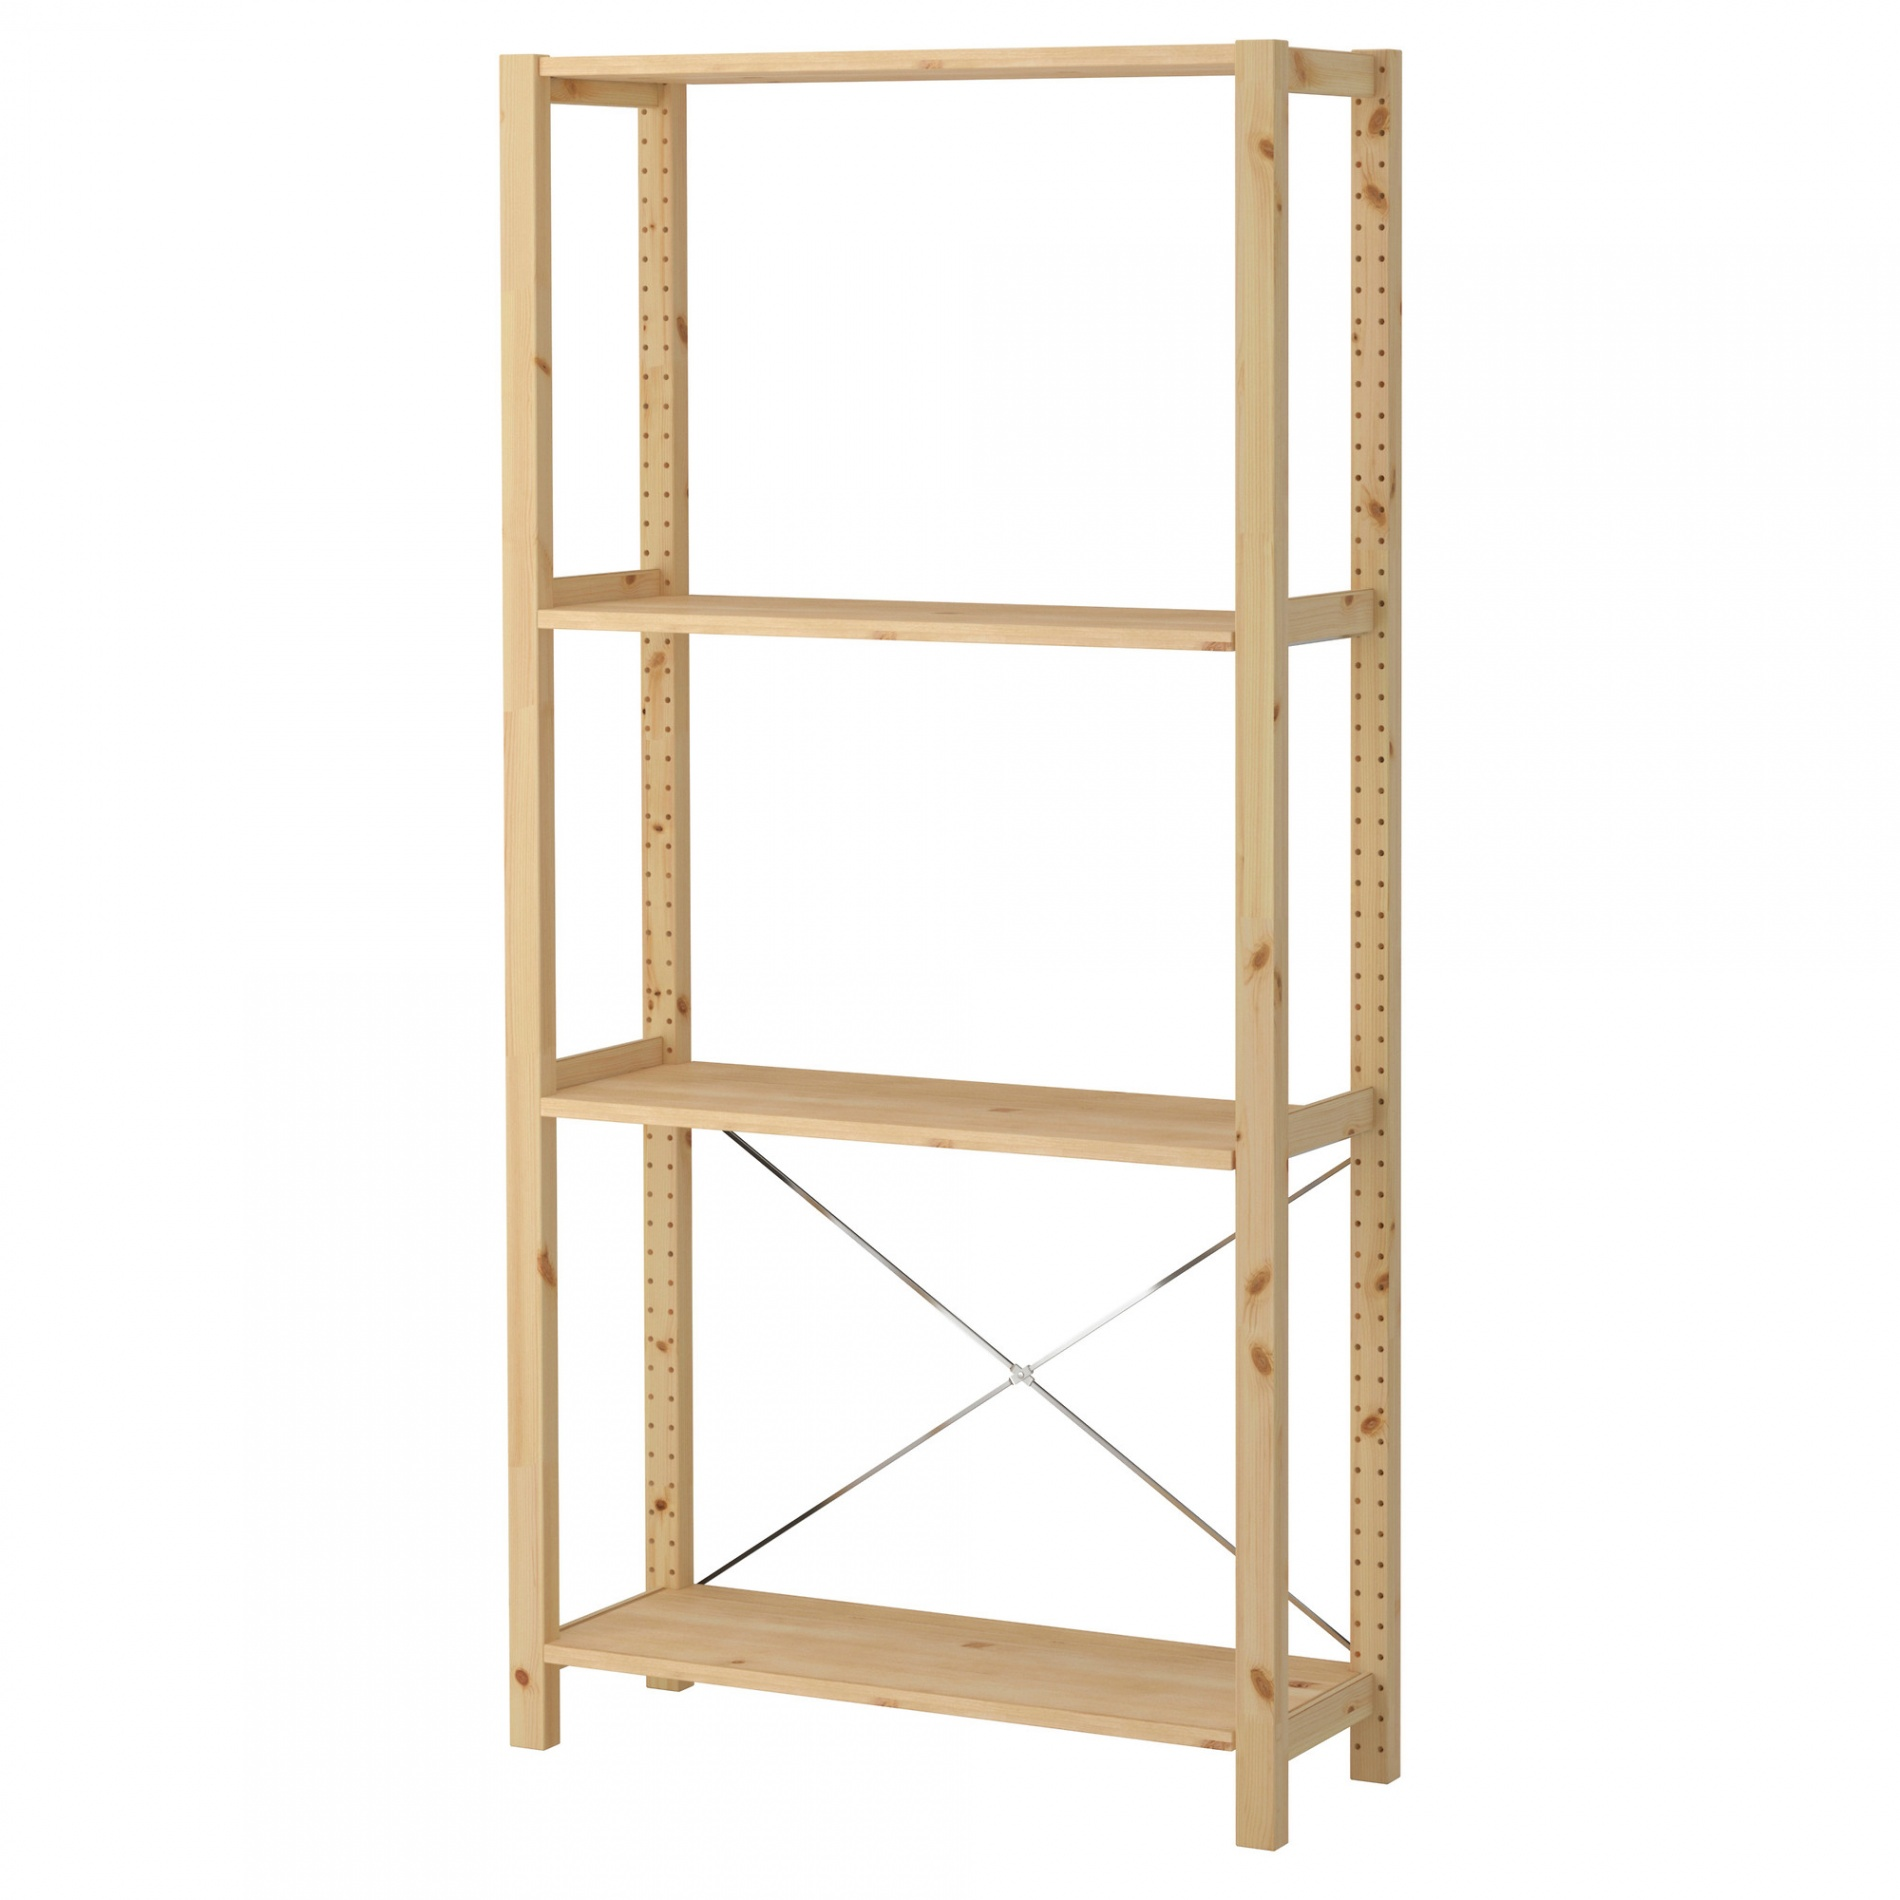 Meuble Cuisine Acier Etagere Design Ikea Latest Awesome Design Etagere Murale